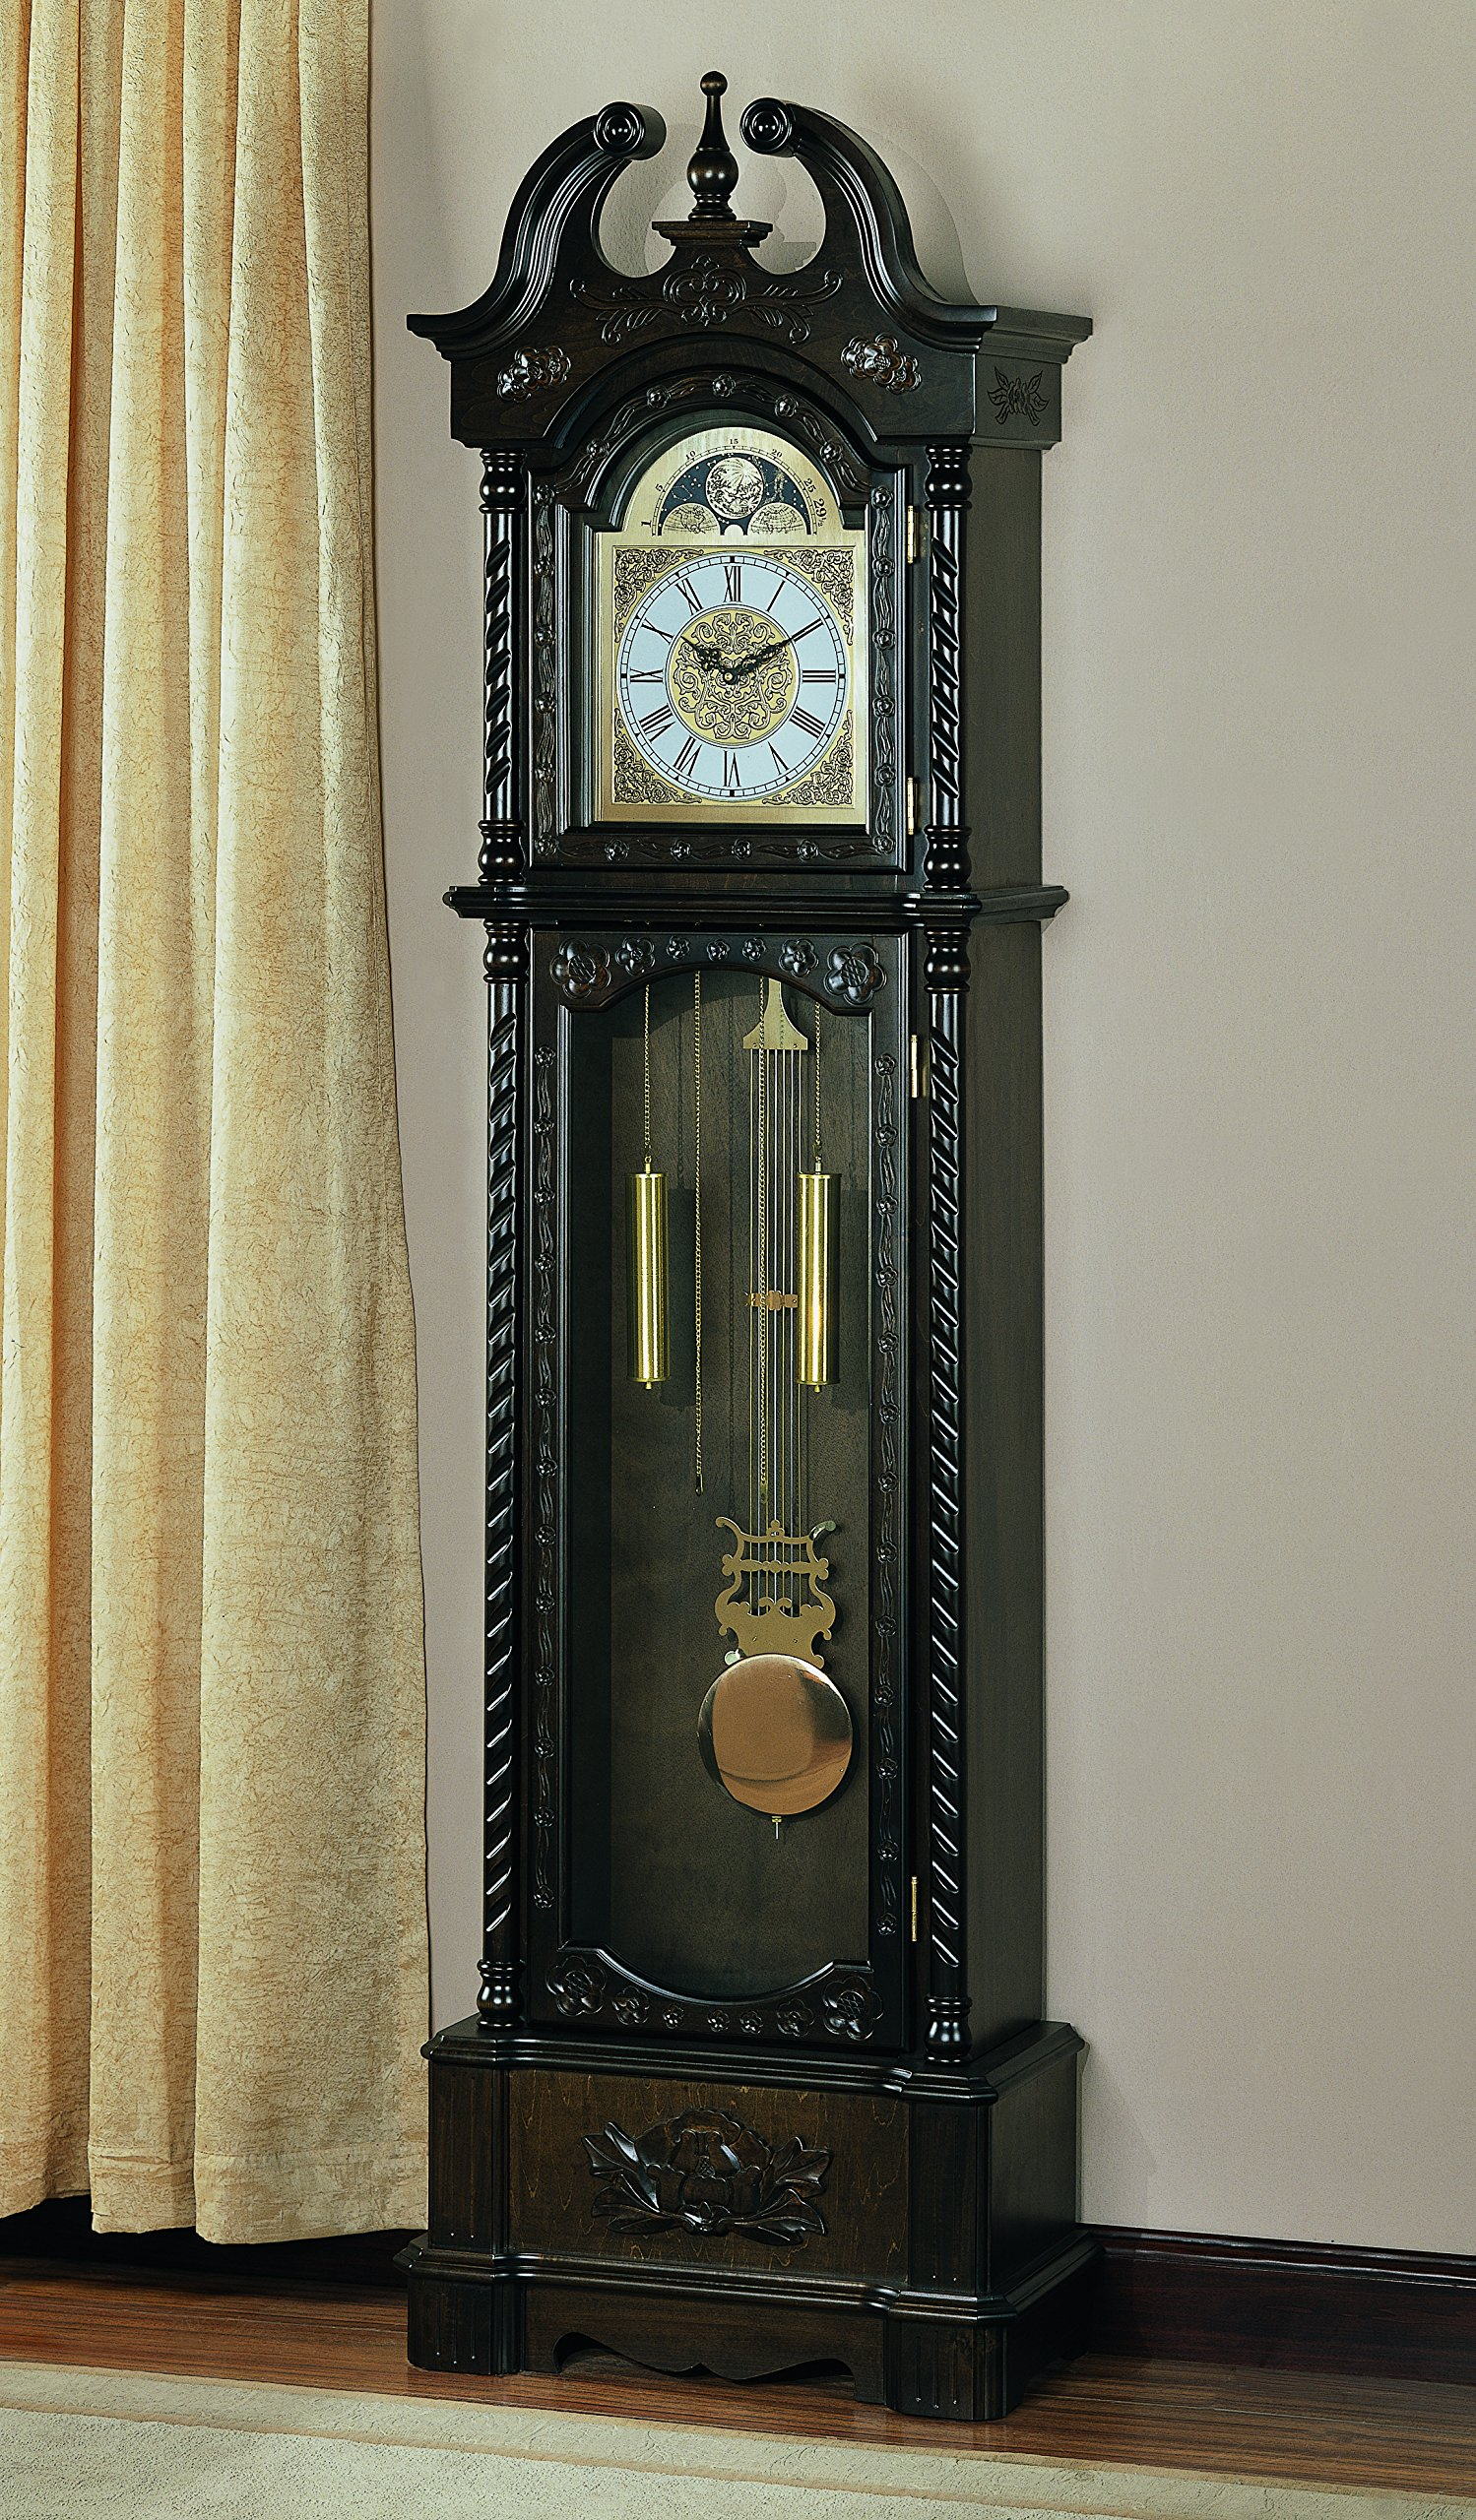 Coaster Home Furnishings Traditional Grandfather Clock with Chime by Coaster Home Furnishings